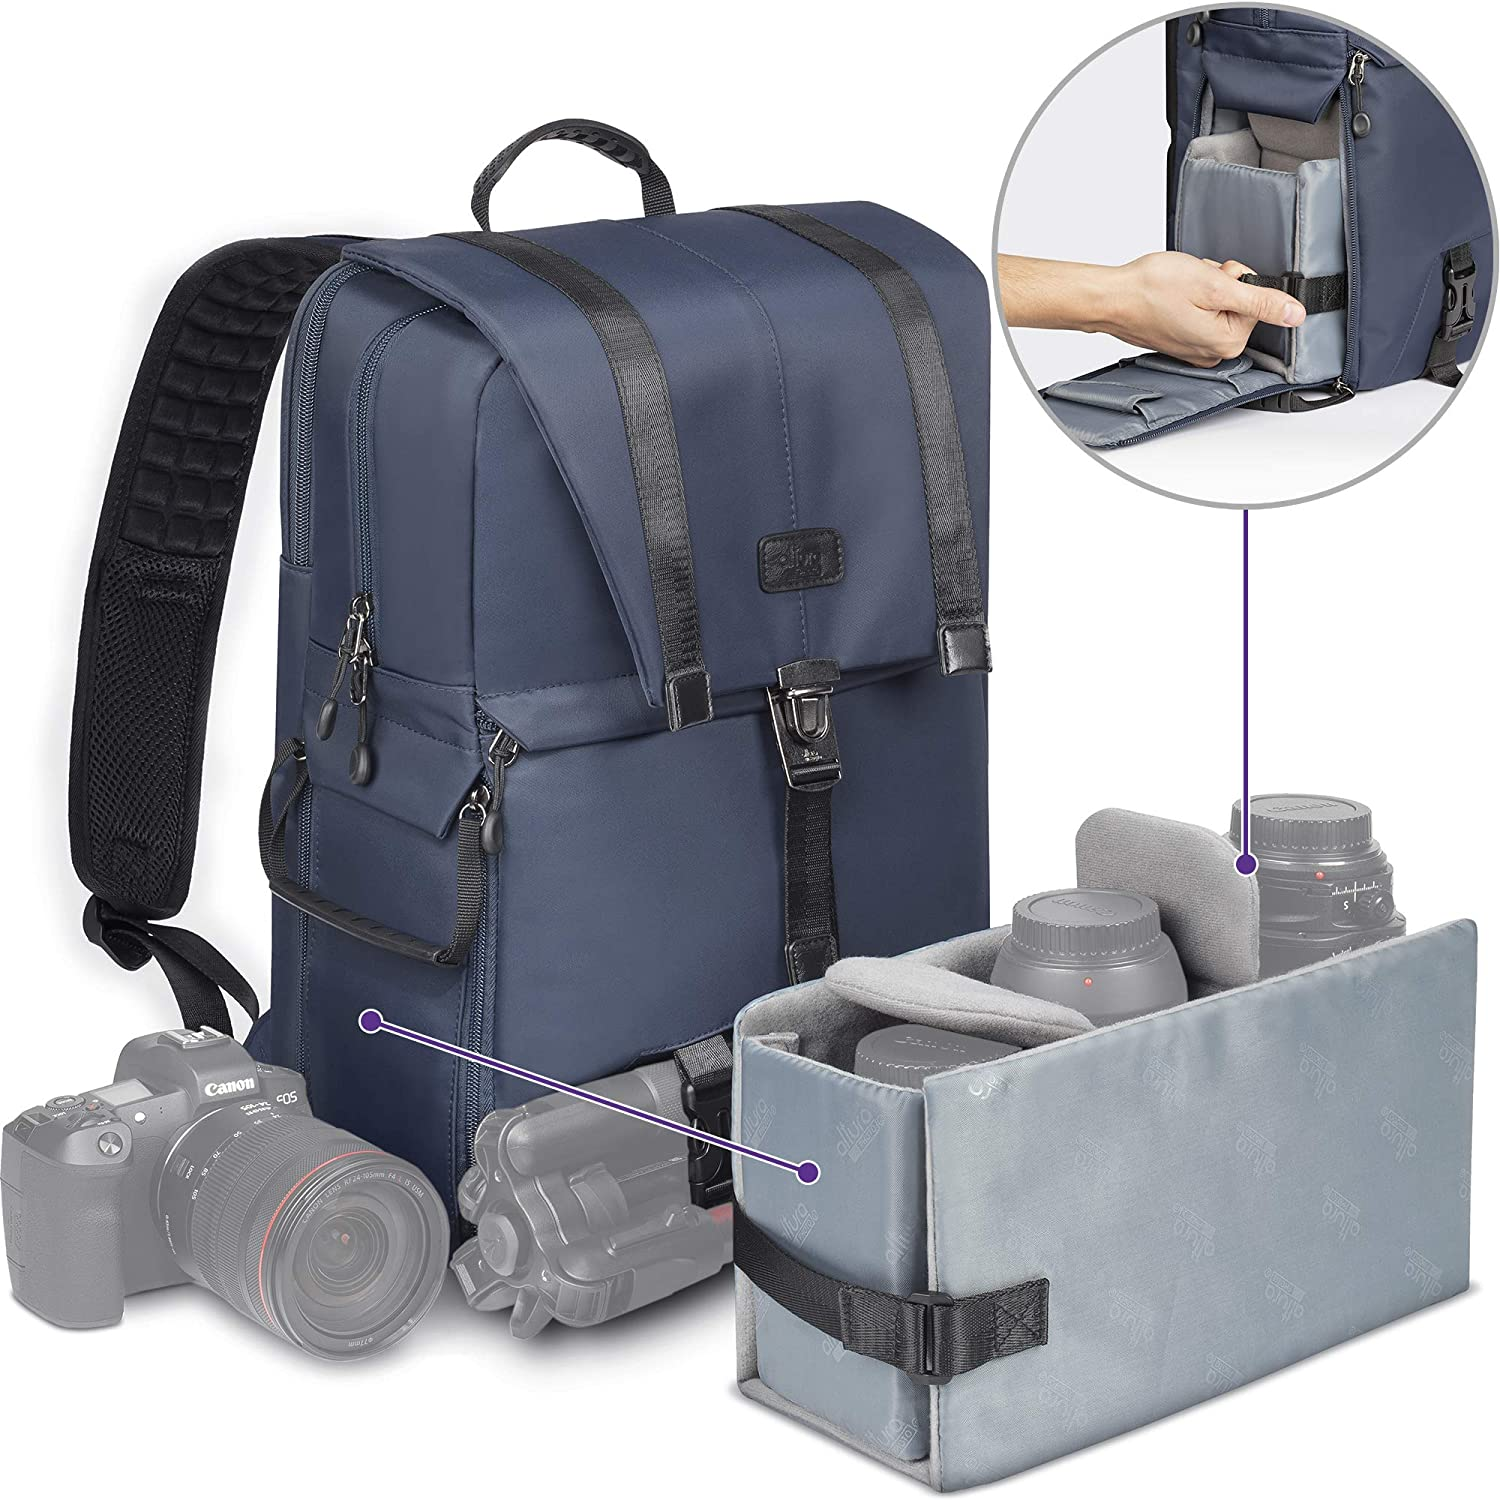 "Altura Photo Navigator Camera Backpack Bag for Sony, Nikon, Canon DSLR/Mirrorless Camera, Fits 17"" Laptop, Lens, Flash, and Accessories, Water Resistant with Tripod Holder"